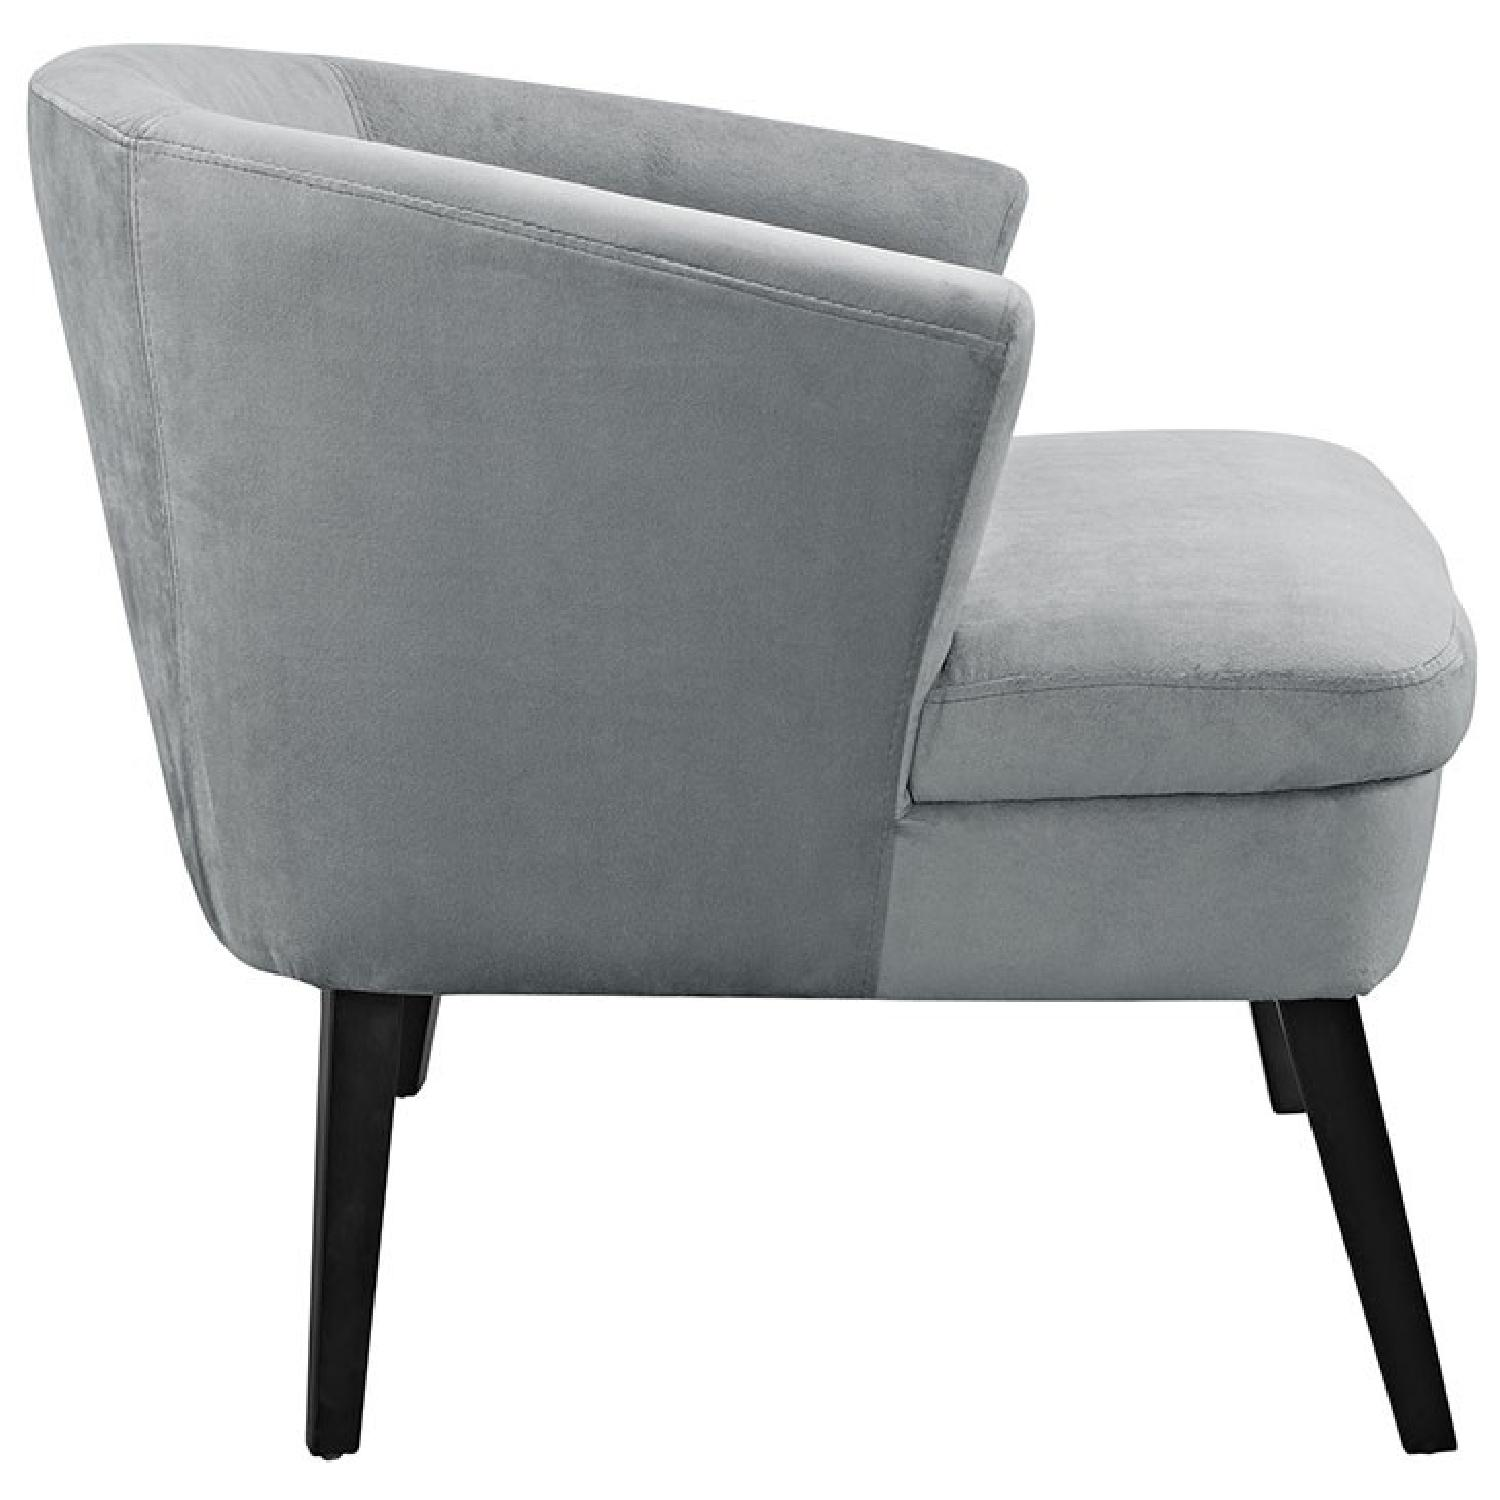 Gray Armchair - image-1